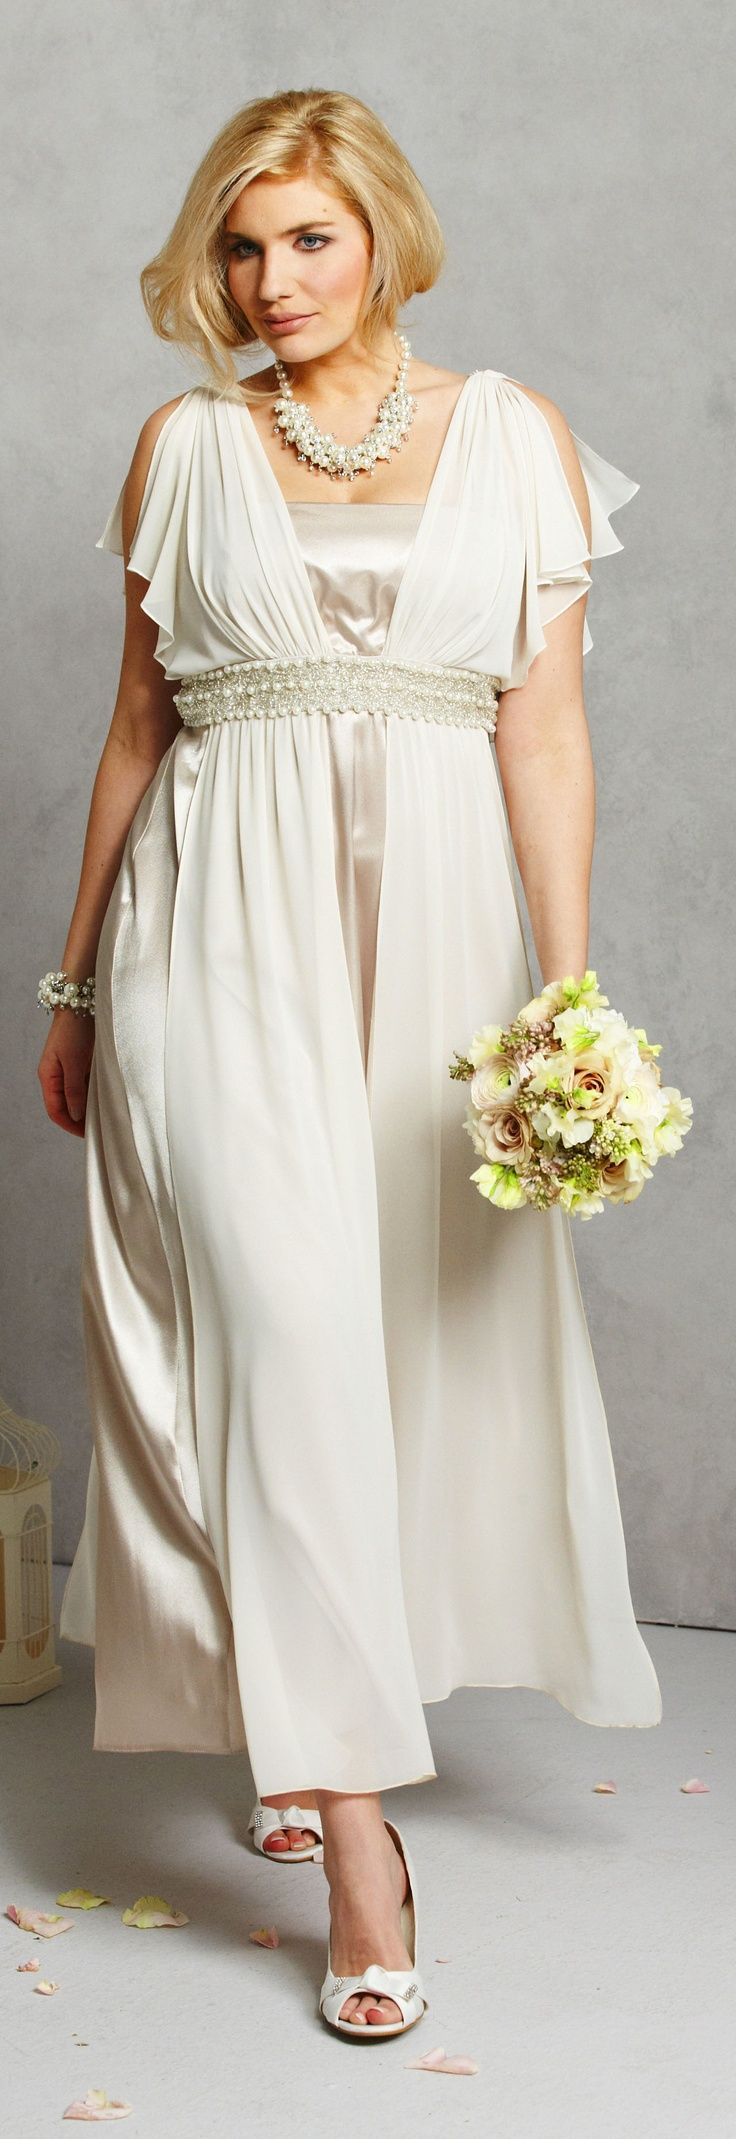 Wedding Dresses For Older Brides With Sleeves - http ...